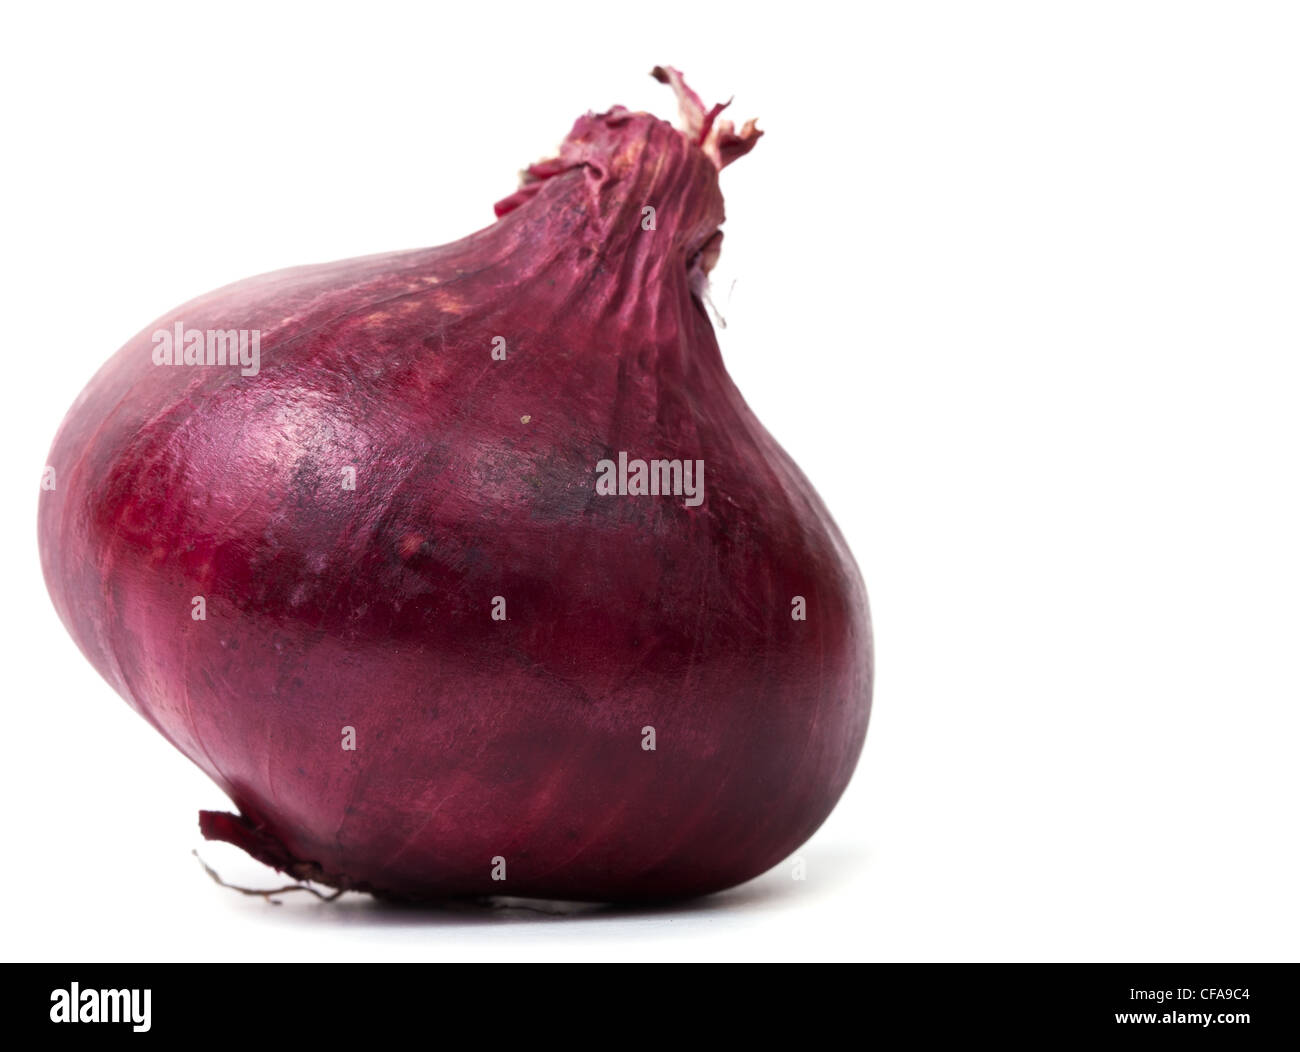 Single red onion bulb isolated on white background with shadow - Stock Image